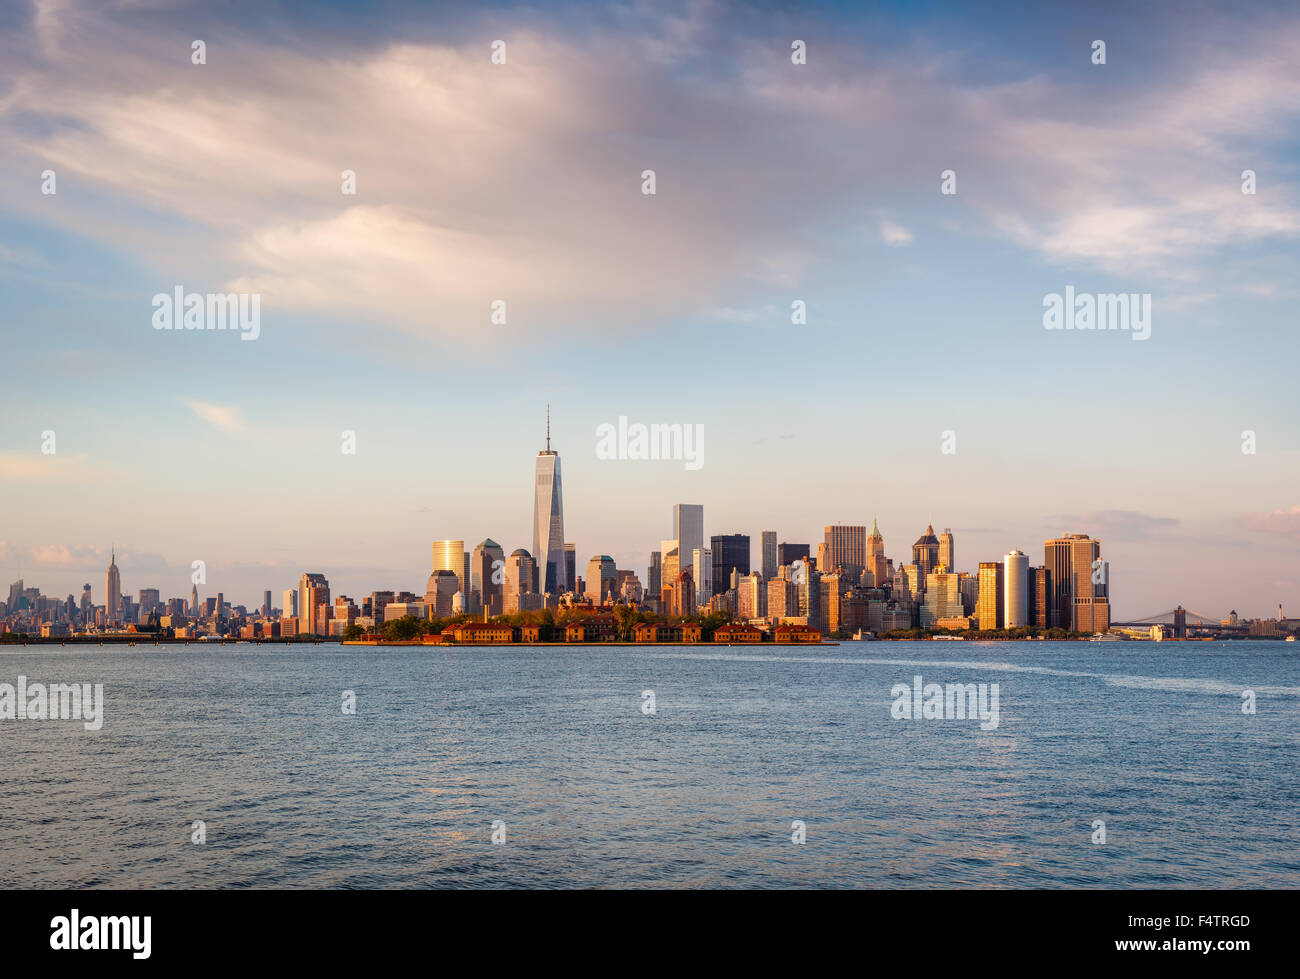 New Yorker Wolkenkratzer und Lower Manhattan Financial District im Abendlicht mit Battery Park und Ellis Island. Stockbild